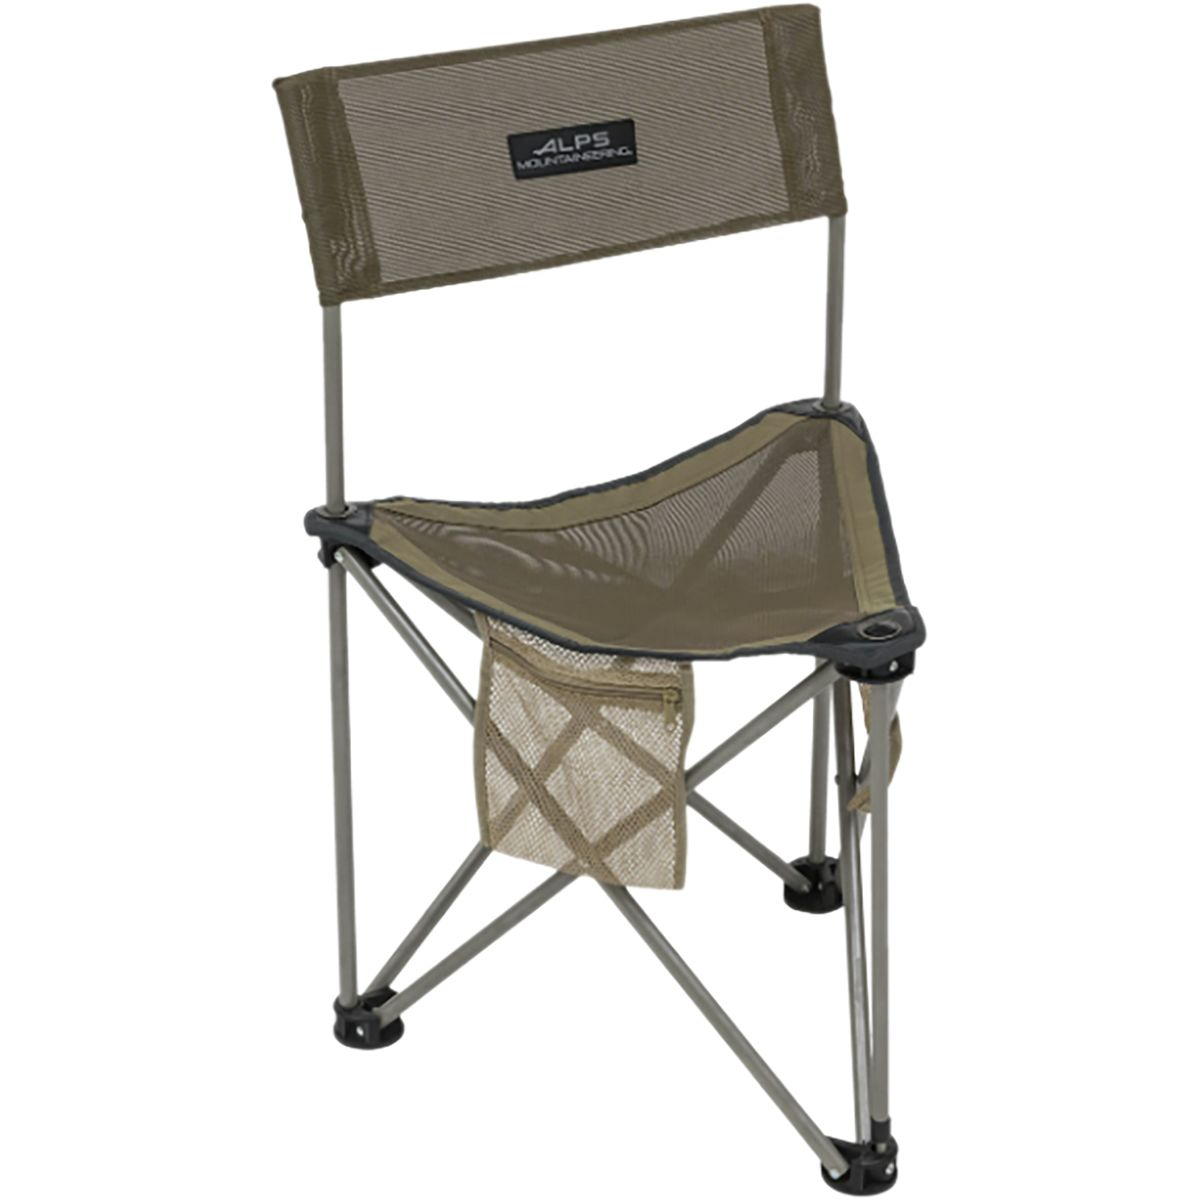 Alps Mountaineering Chair Alps Mountaineering Alps Mountaineering Leisure Chair